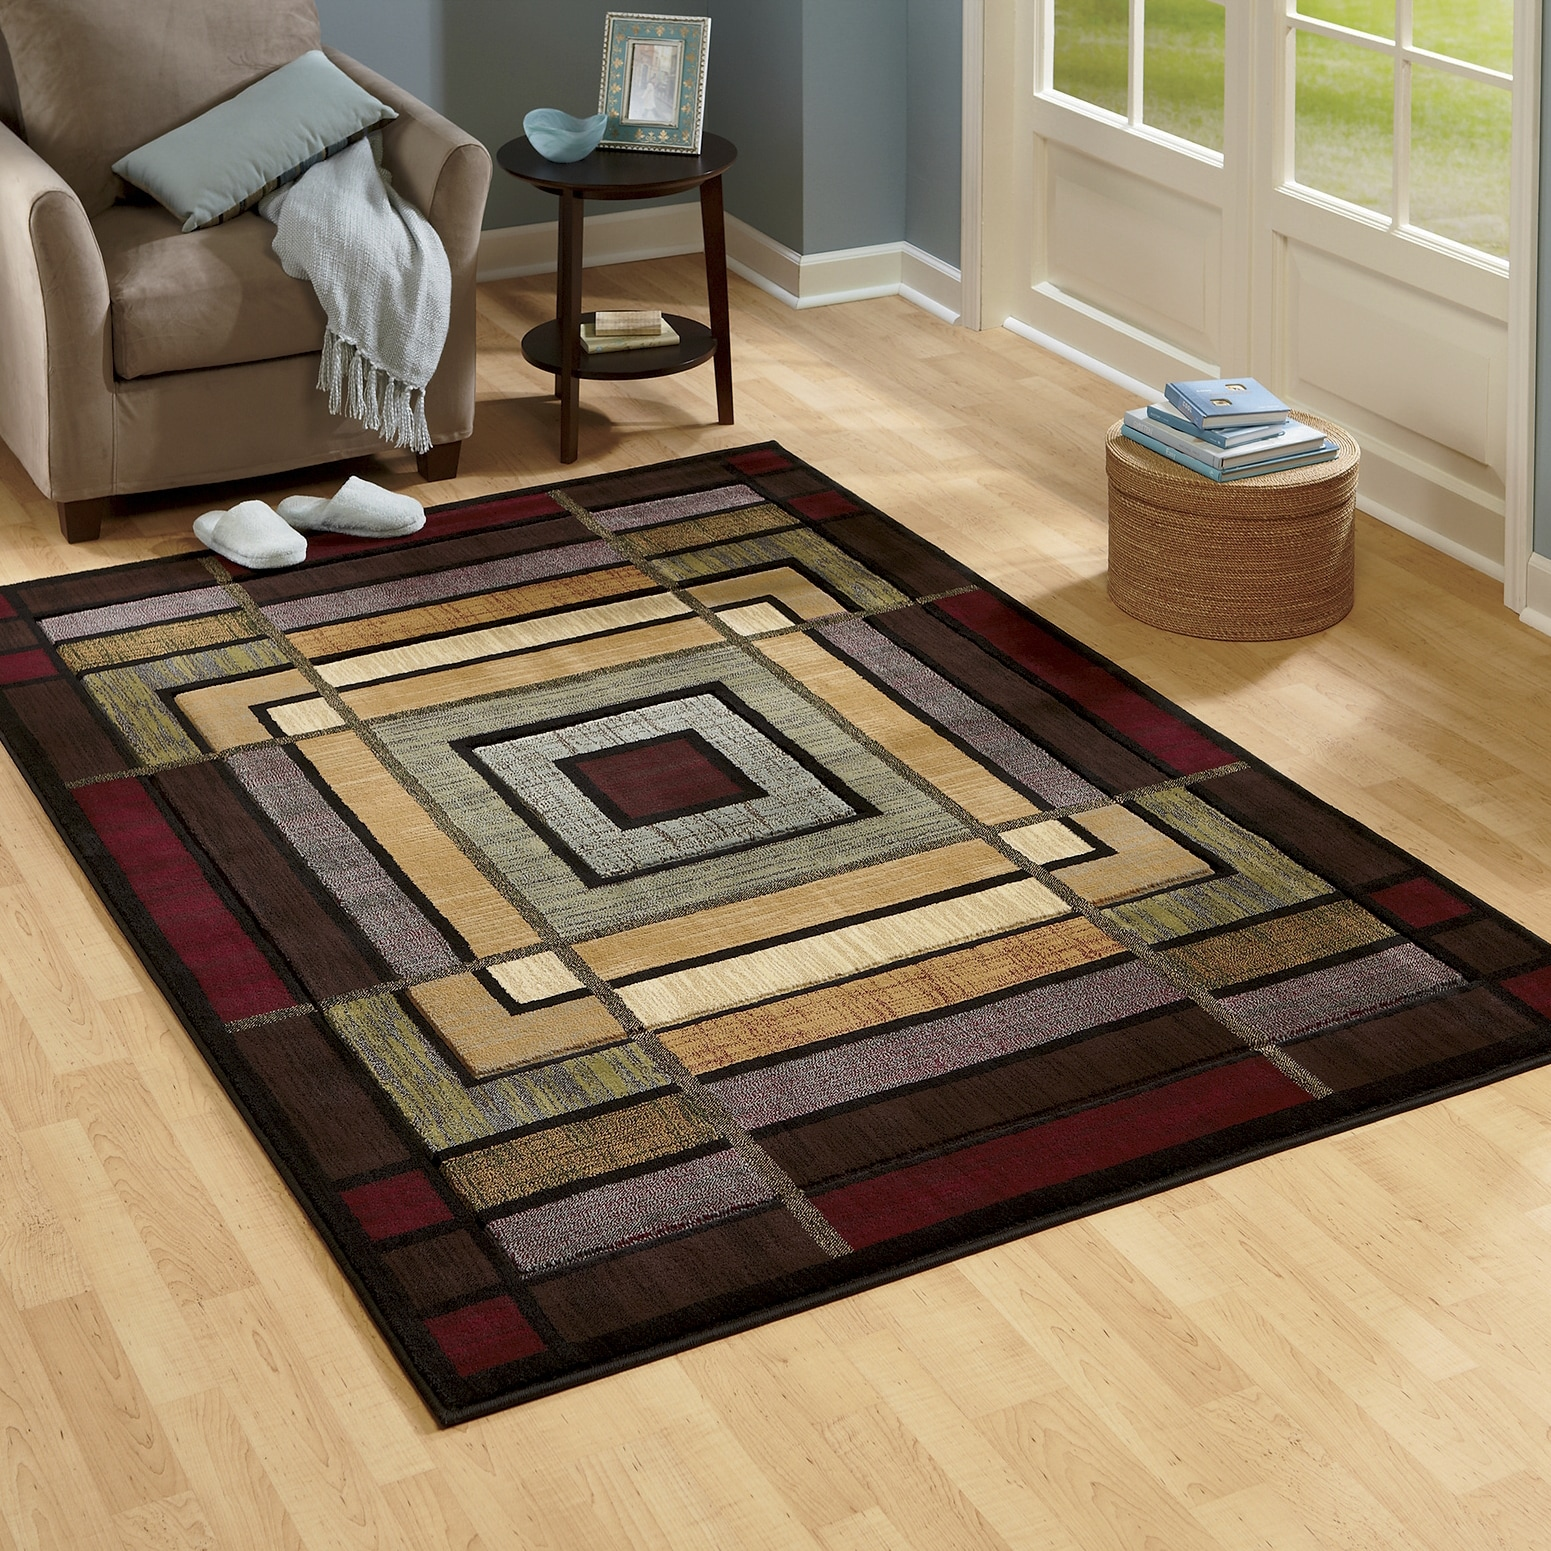 area rugs for kitchen island table with seating bedroom shag country door ambience hand carved rug